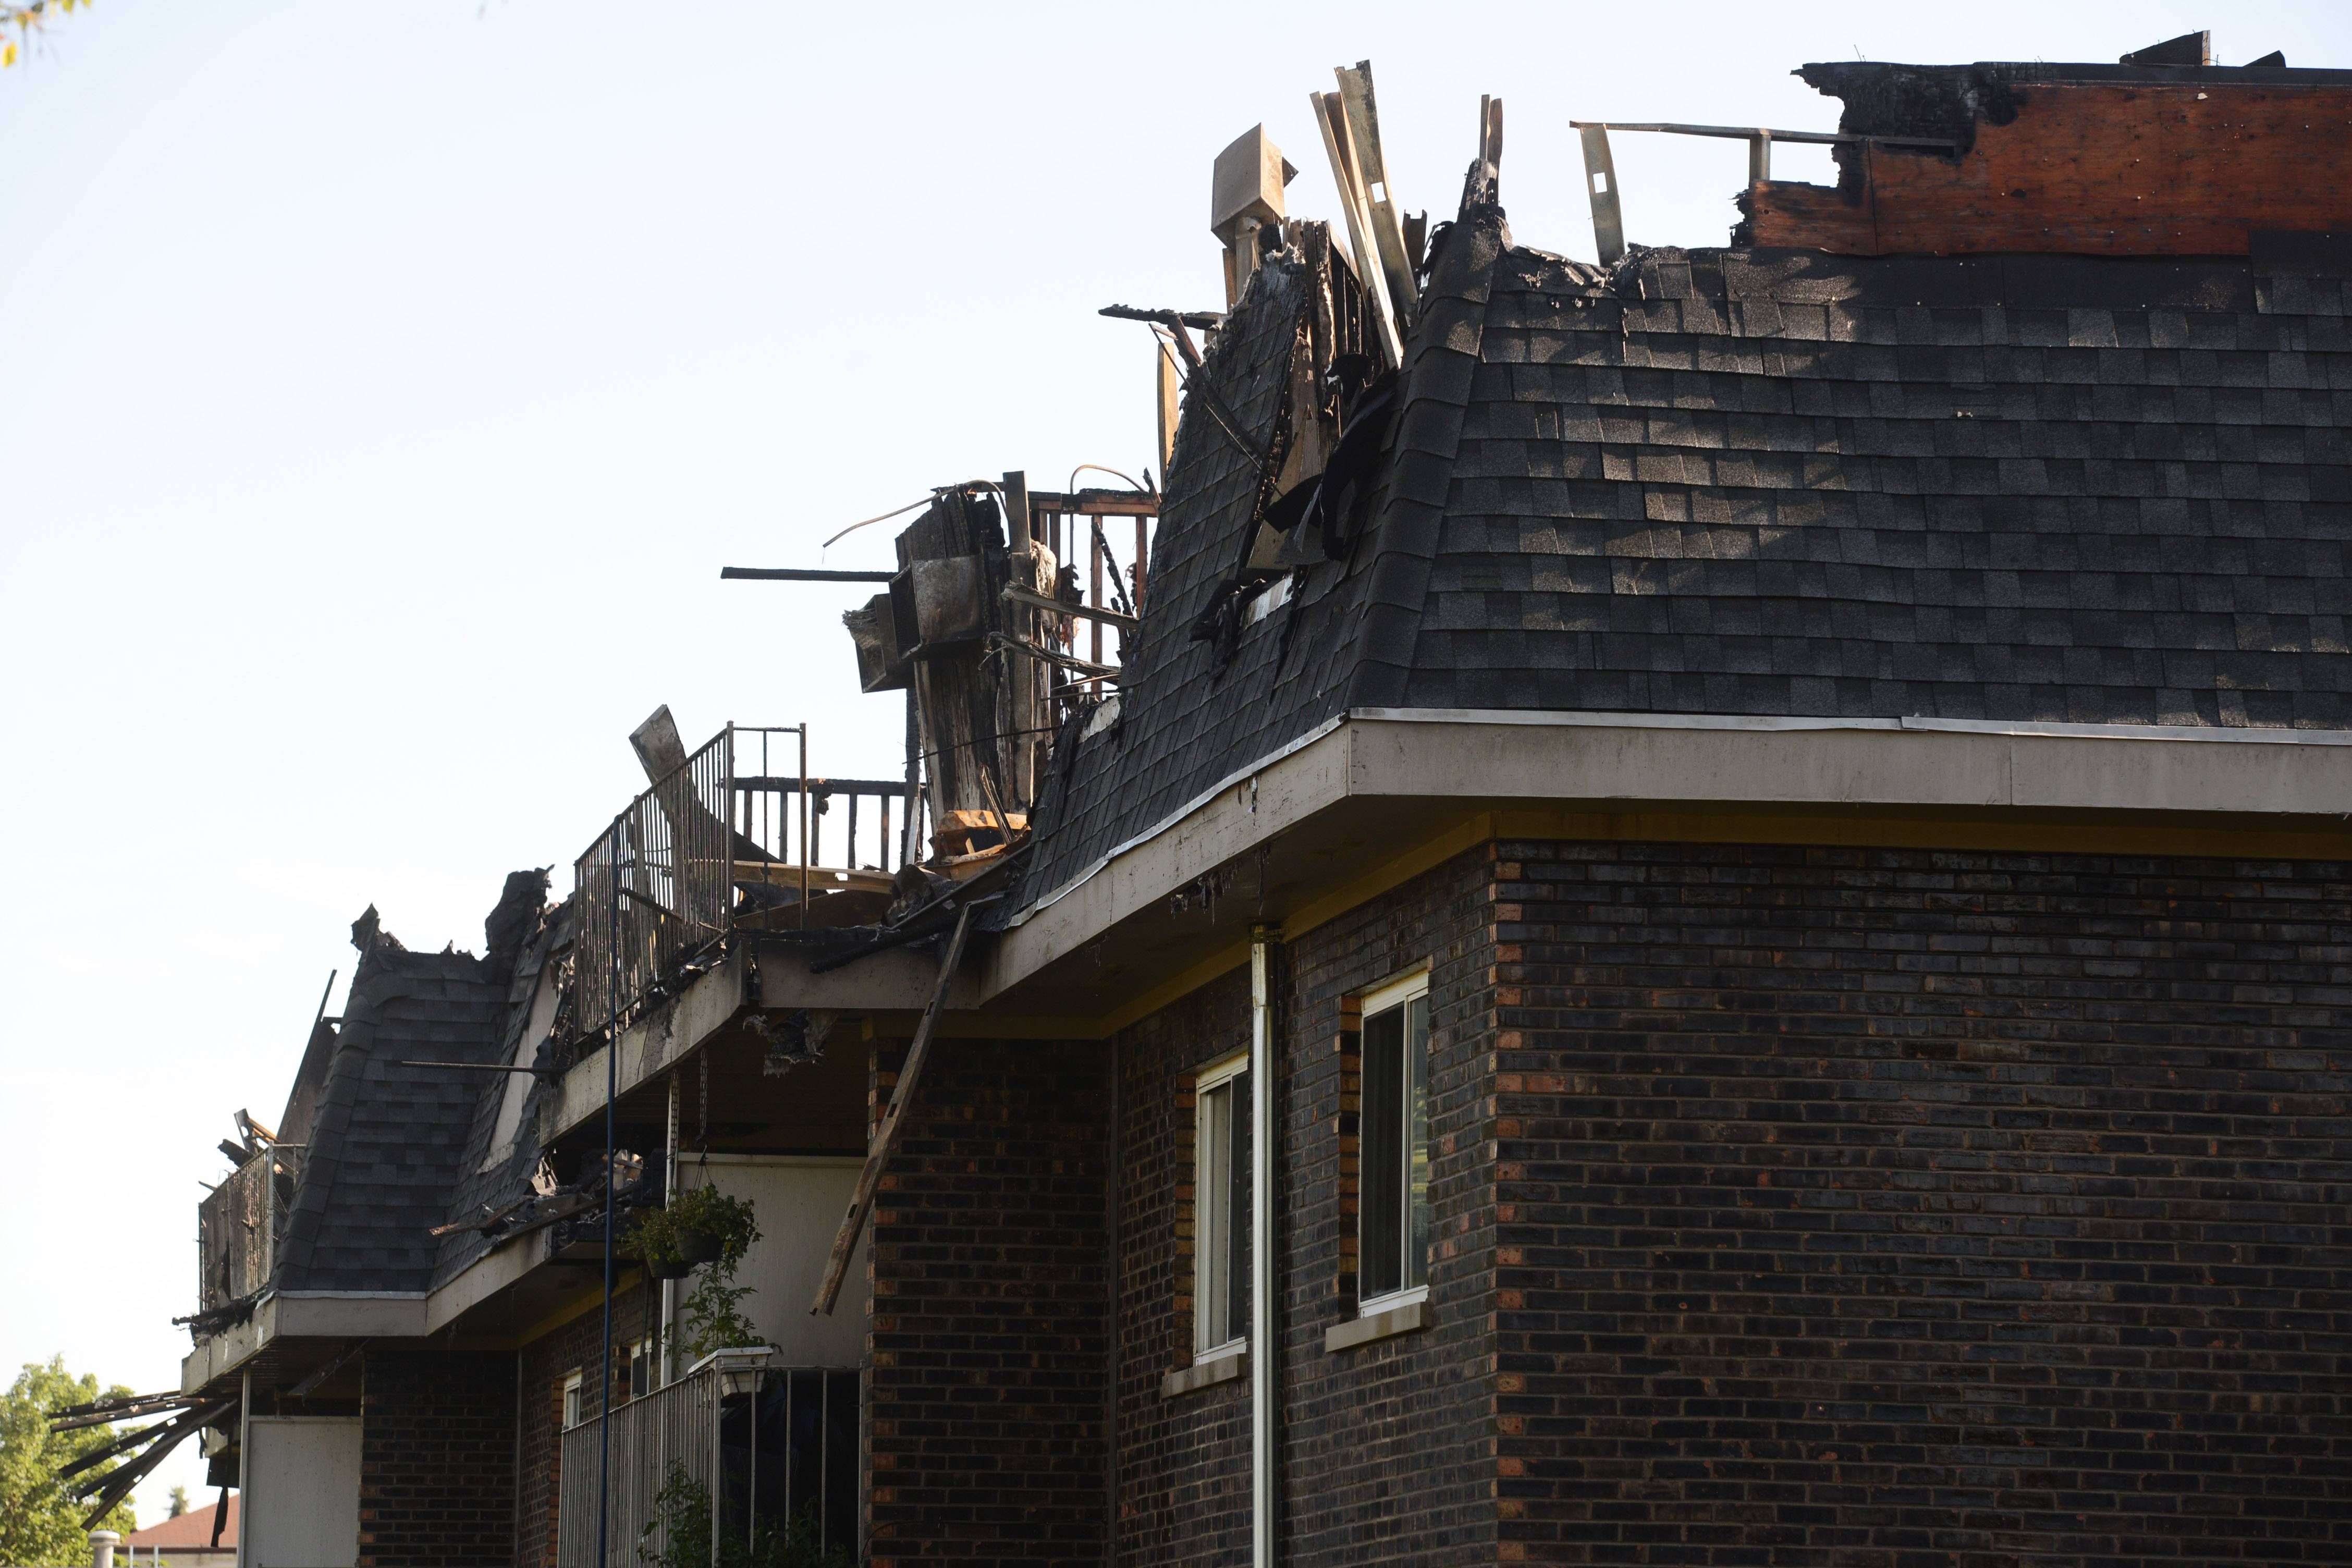 Officials: No criminal intent in Prospect Heights apartment fire